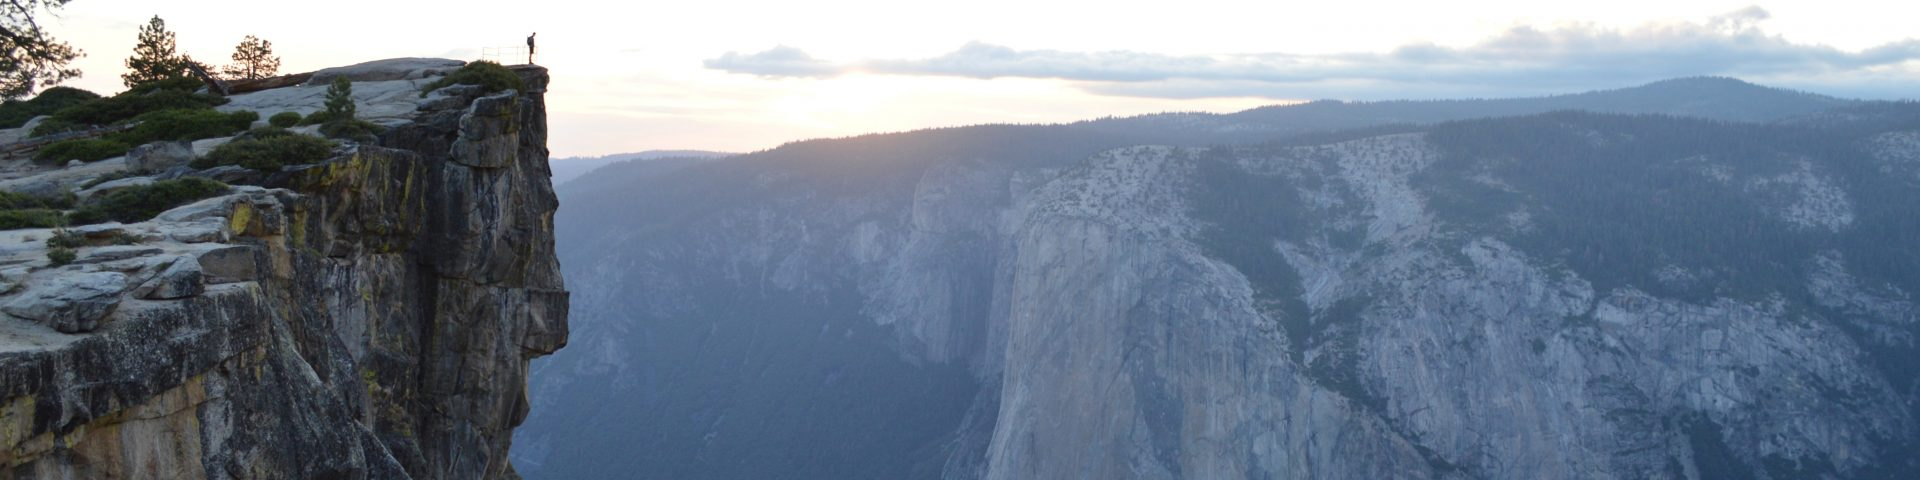 Image: wide view of a person standing on a cliff face looking out at a valley surrounded by mountains